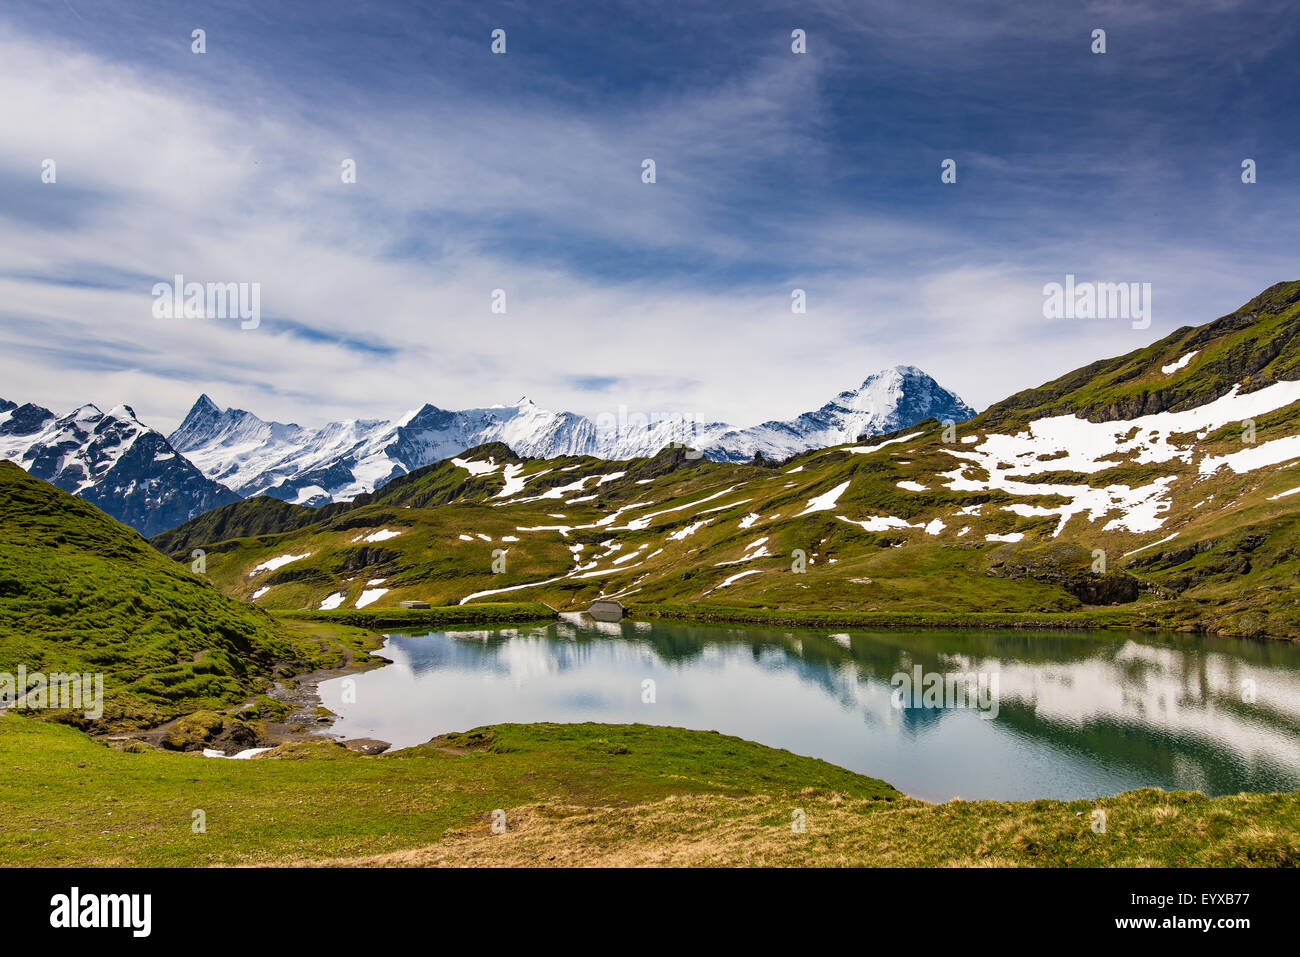 Bachsee with mountain backdrop above Grindelwald - Stock Image